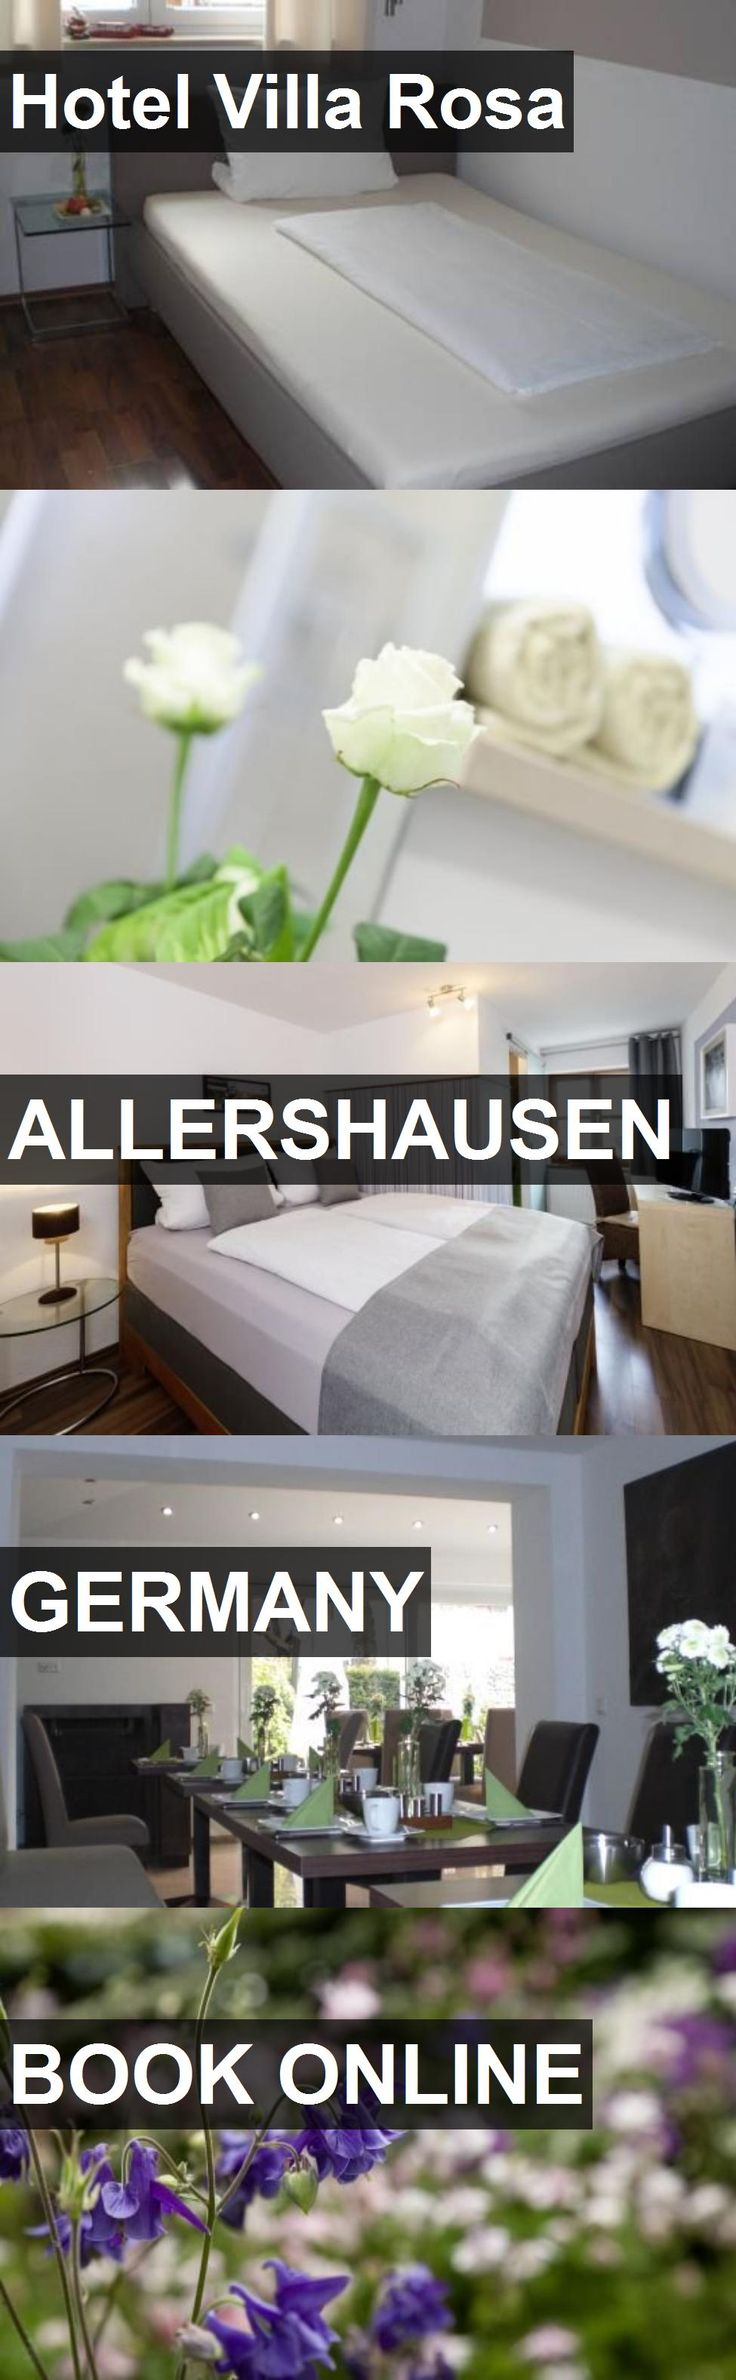 Hotel Villa Rosa in Allershausen, Germany. For more information, photos, reviews and best prices please follow the link. #Germany #Allershausen #travel #vacation #hotel